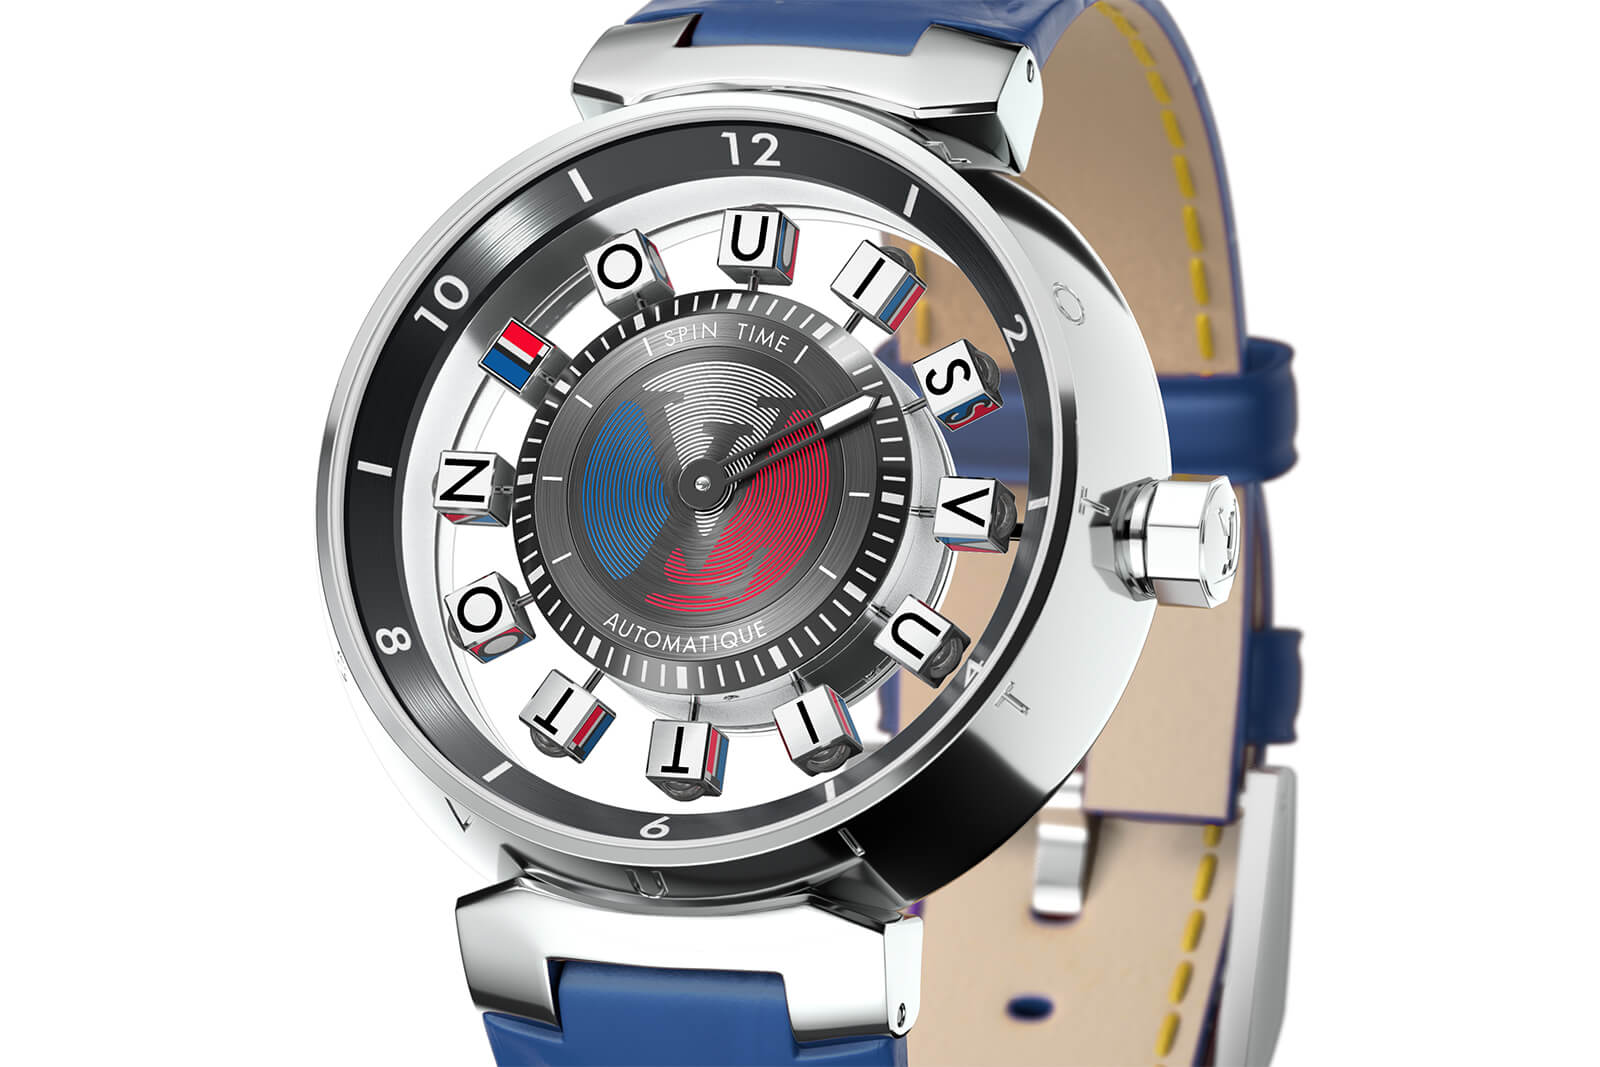 e0d79f17ca5c Louis Vuitton Tambour Spin Time Air Watch - Oracle Time